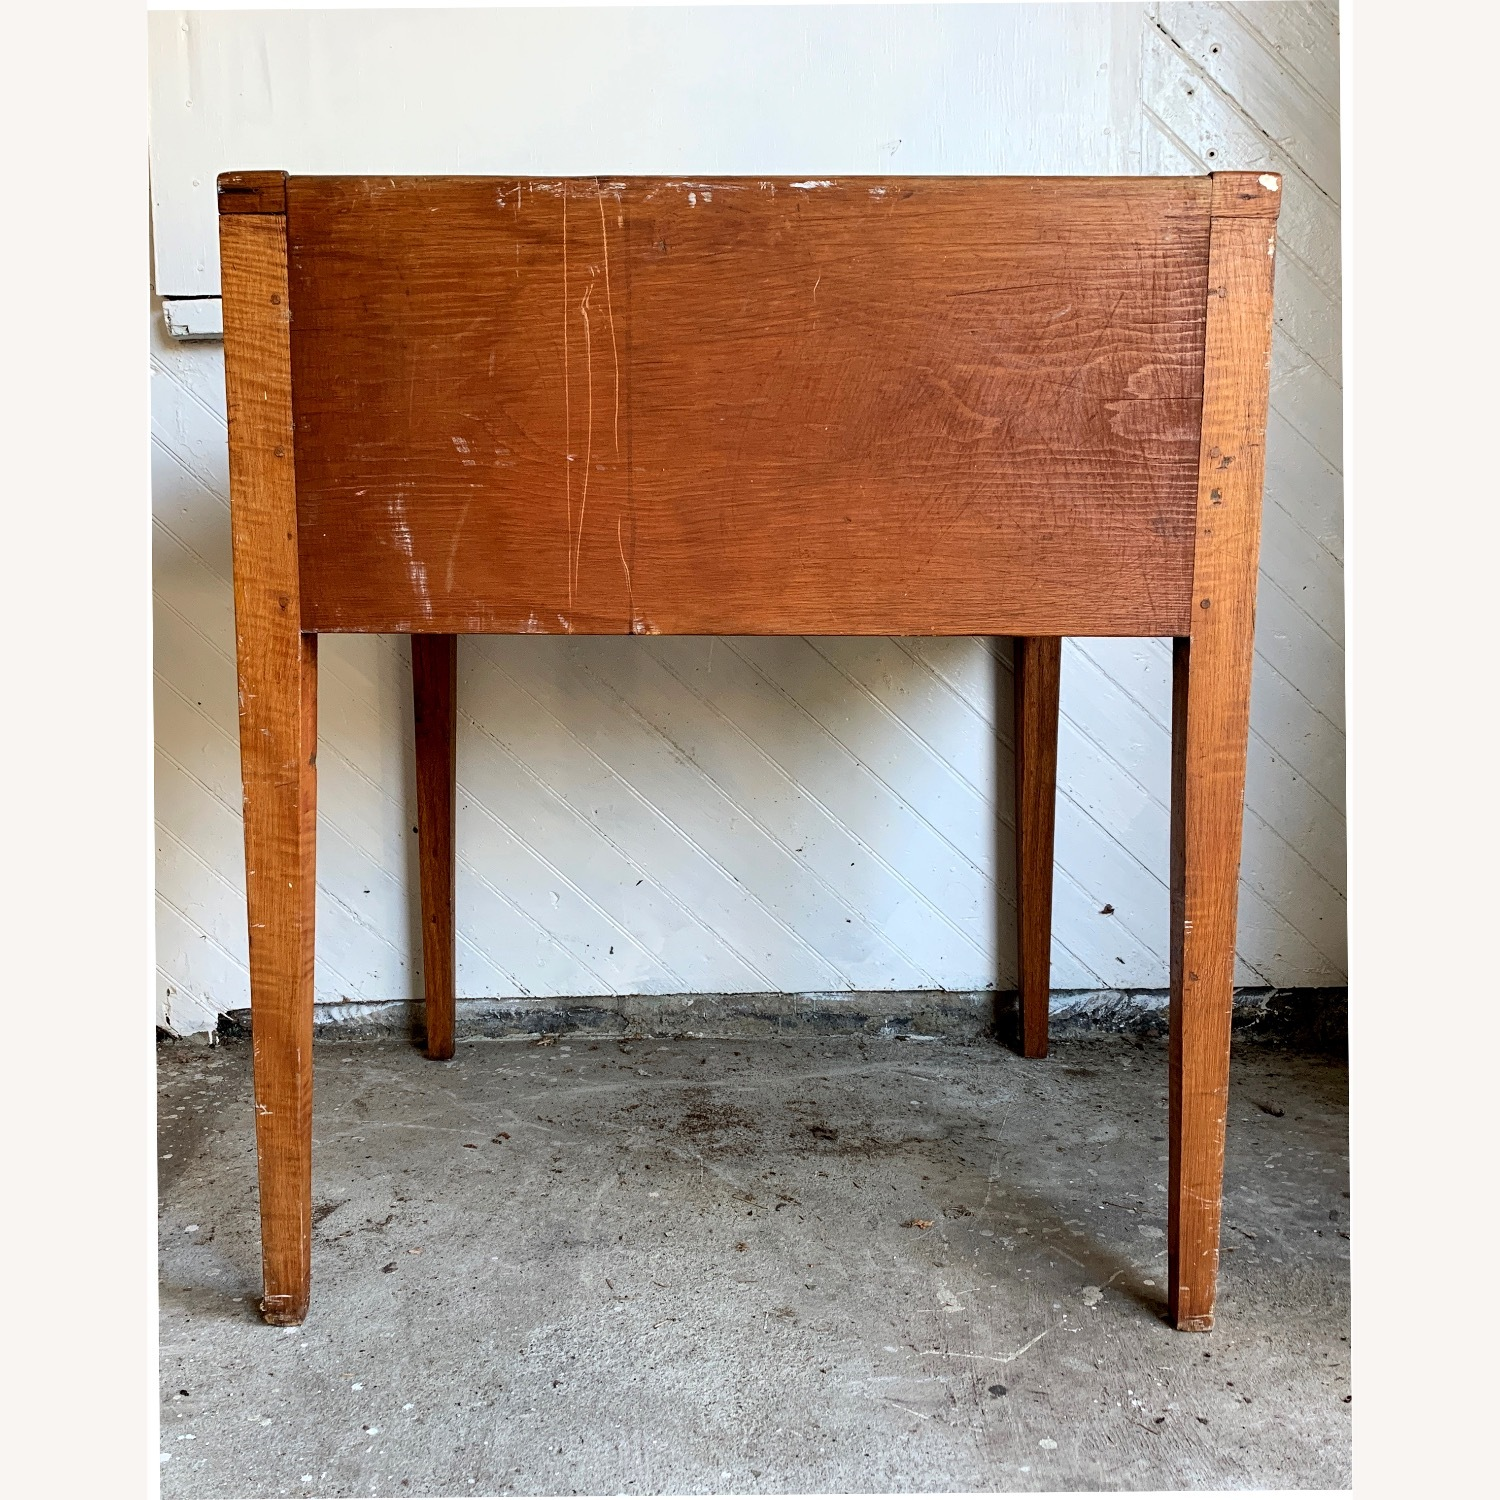 Antique Wooden Slant-top Desk with Storage - image-5